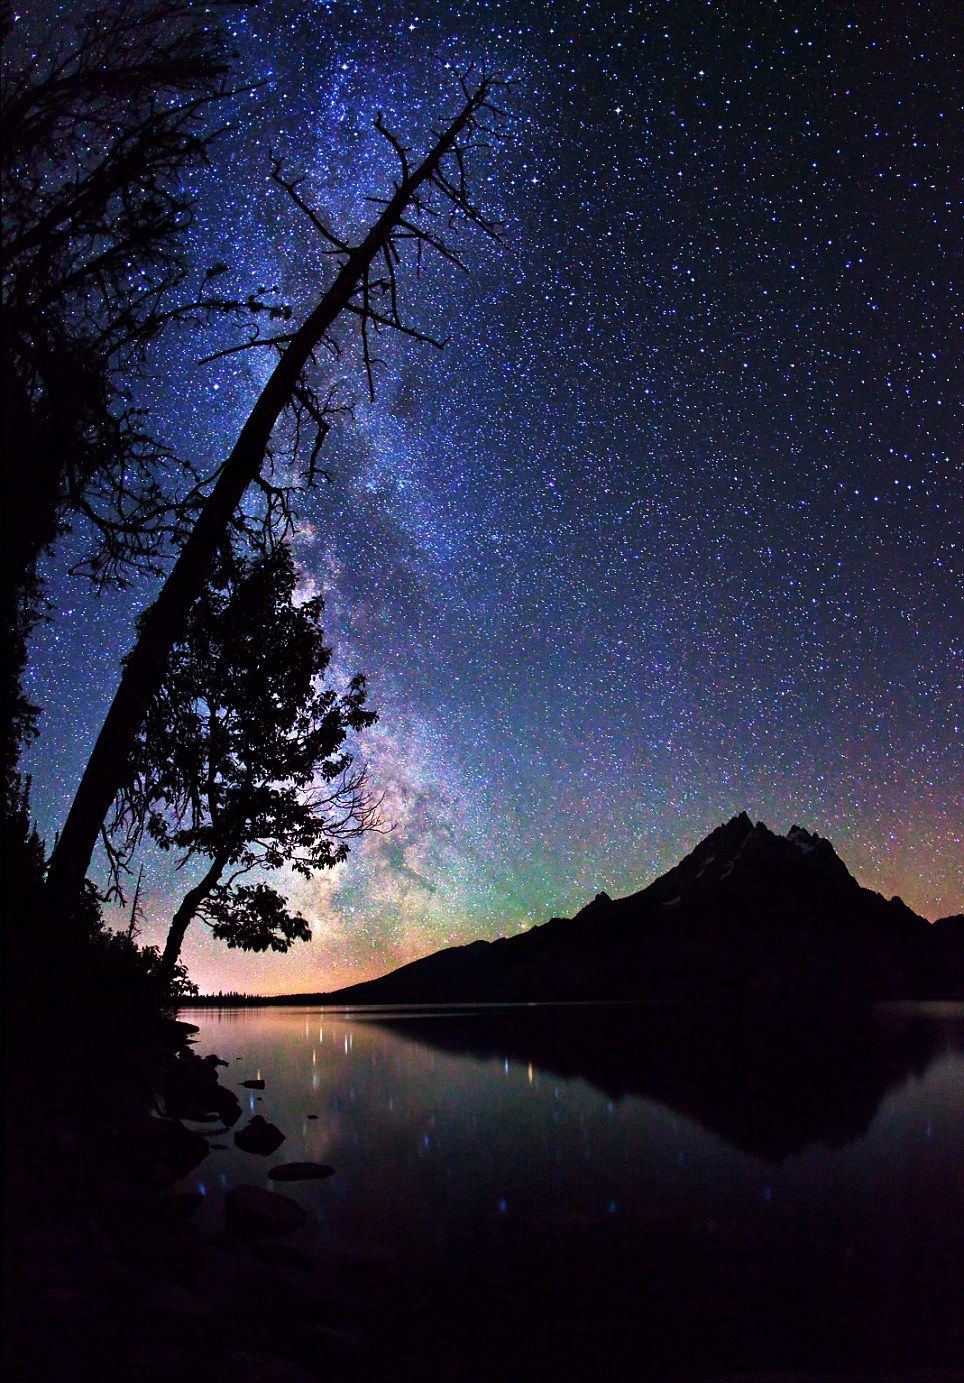 Milky Way Stars Over Grand Teton Mountain Range At Grand Teton National Park On August 2011 In Wyoming Salt Lake City Photographer Royce Bair